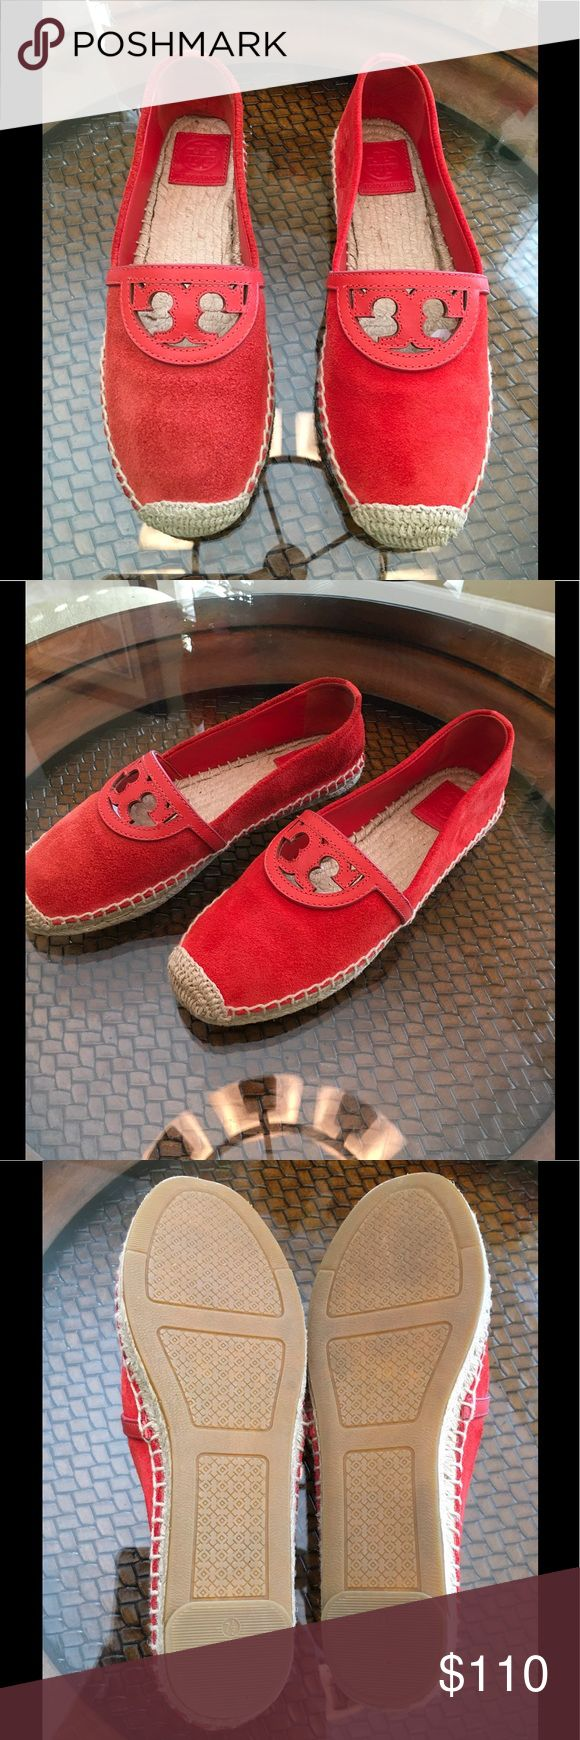 💥Tory Burch Sidney Espadrilles 💥 Tory Burch suede and leather espadrilles Slip on design Suede upper with cut-out leather design Jute footbed with full rubber sole Color: red canyon  NWOB Tory Burch Shoes Espadrilles